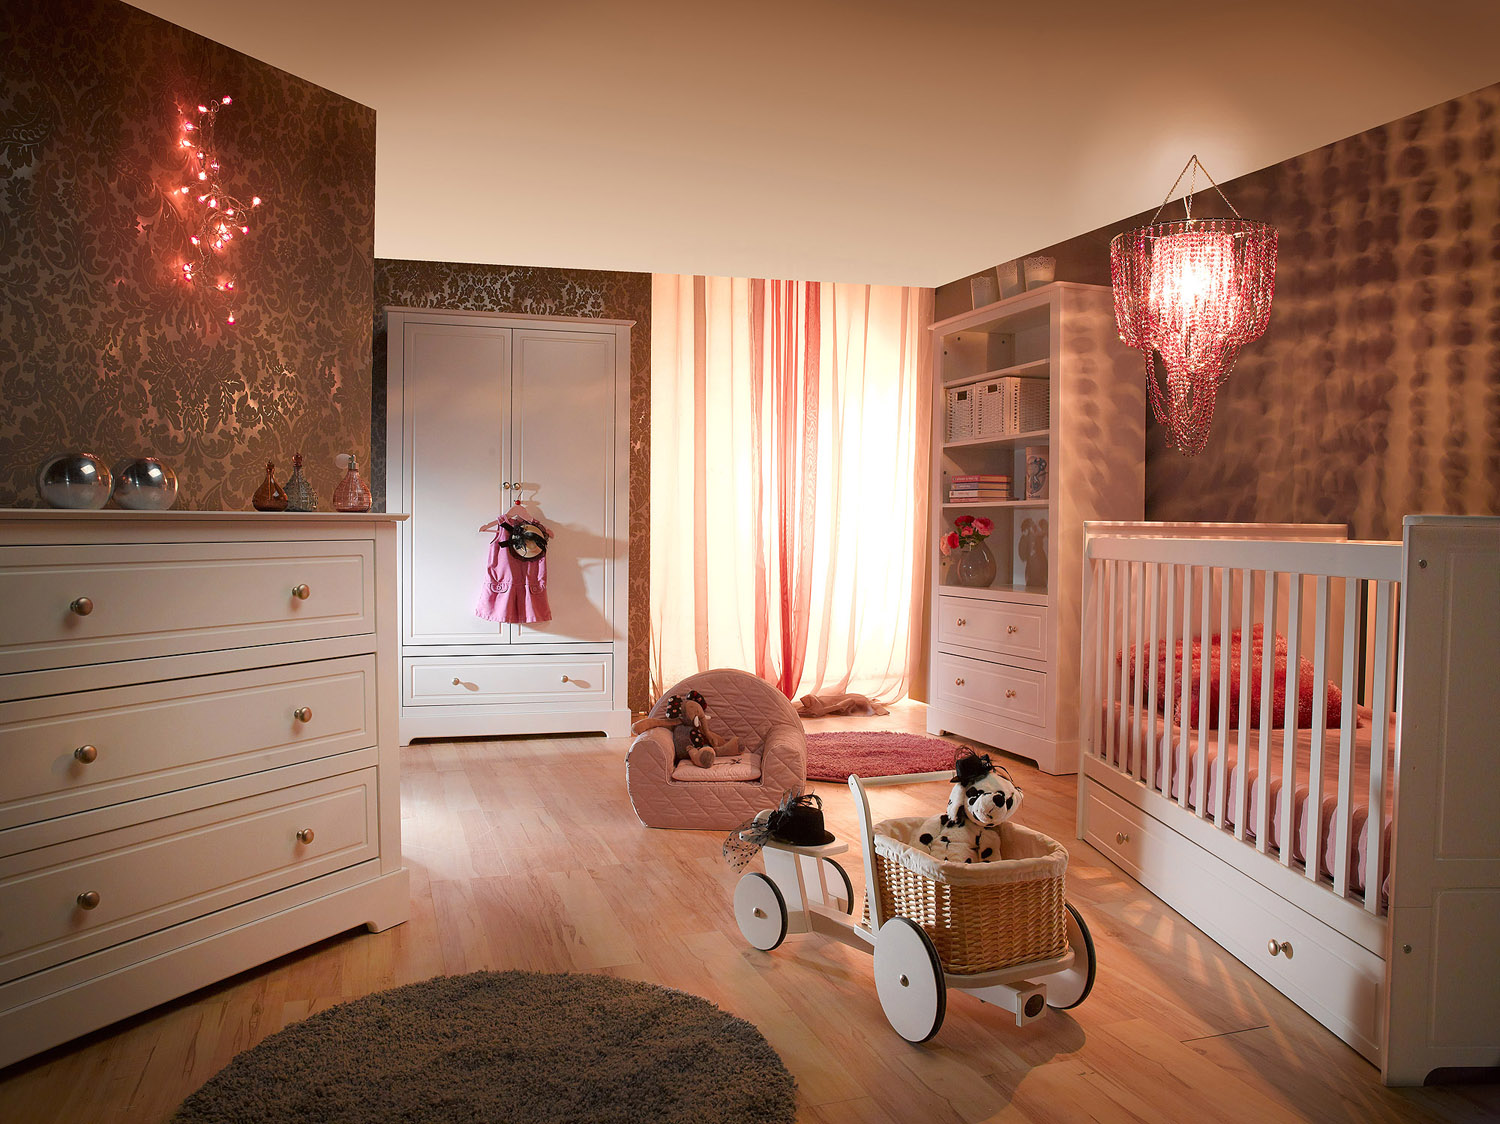 kinder babyzimmer mary komplett online kaufen. Black Bedroom Furniture Sets. Home Design Ideas